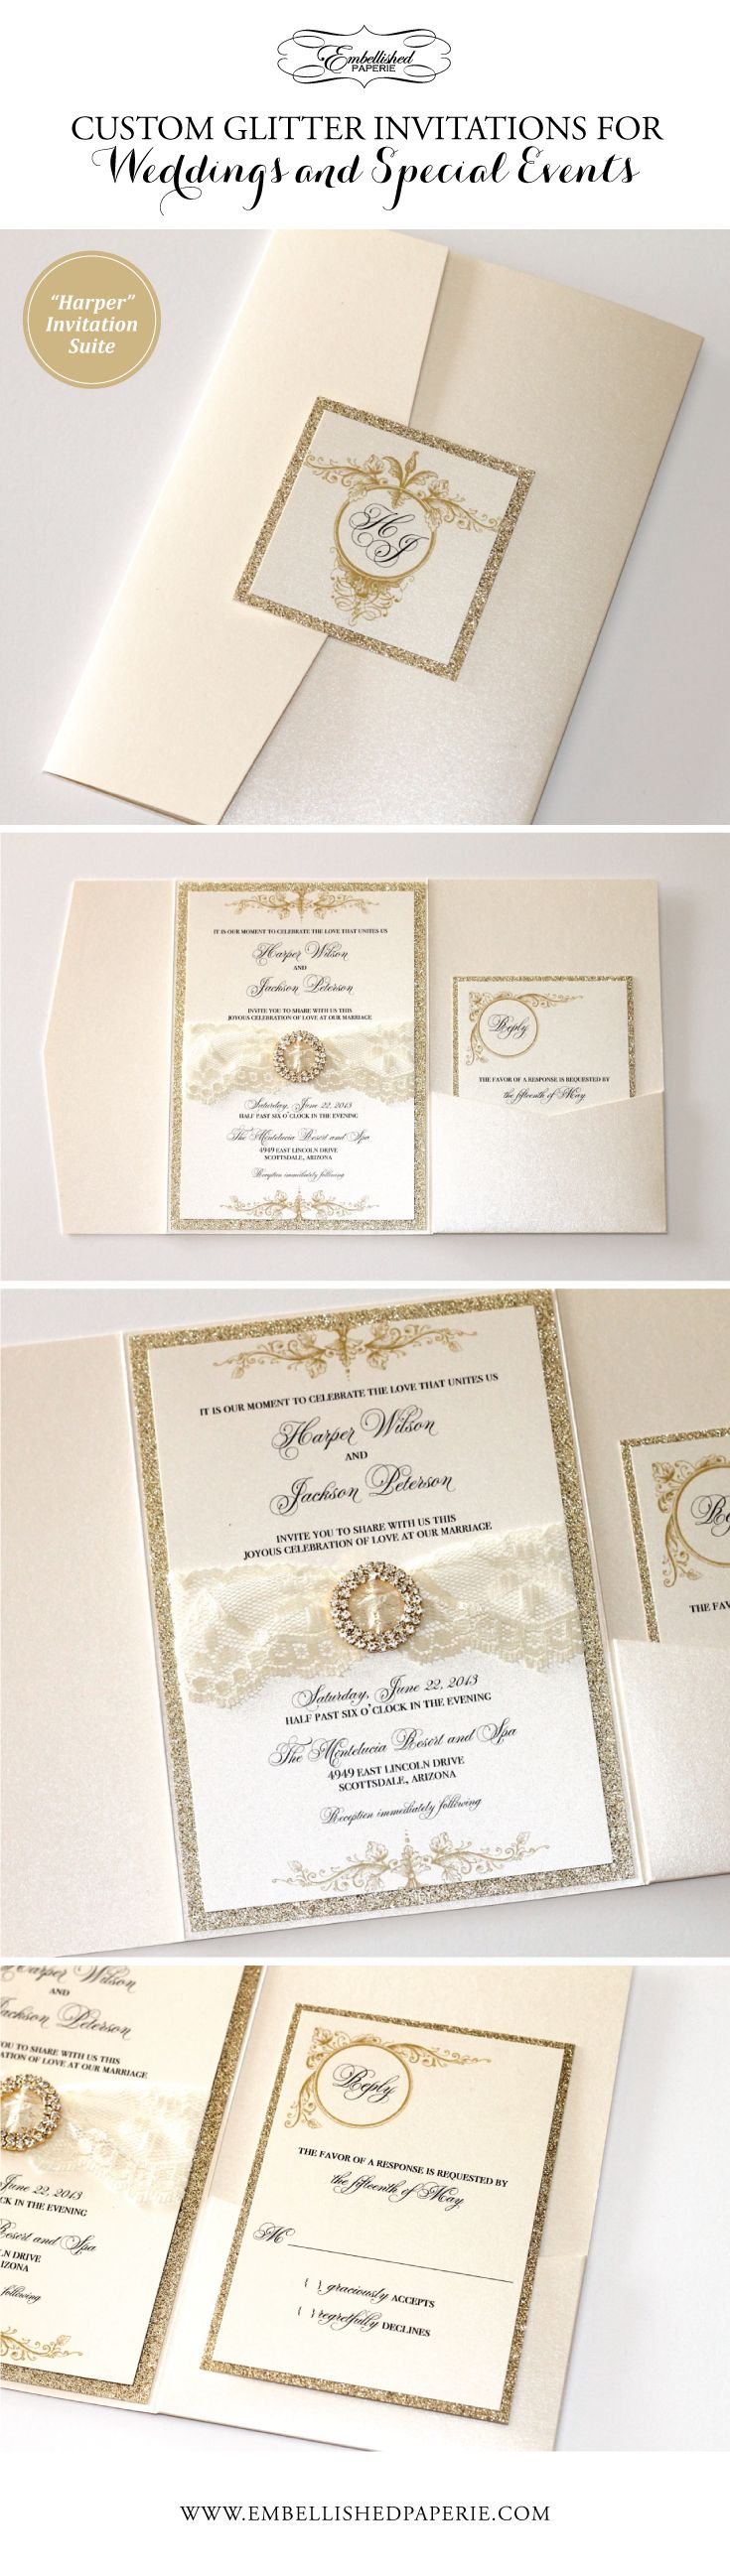 Vintage Lace Wedding Invitations with Gold Glitter.  Ivory metallic, Gold Glitter border, Embellished with Gold crystal buckle and Ivory lace. Elegant Pocket fold Invitation perfect for Weddings and Special Events.  Colors can be customized.  www.embellishedpaperie.com